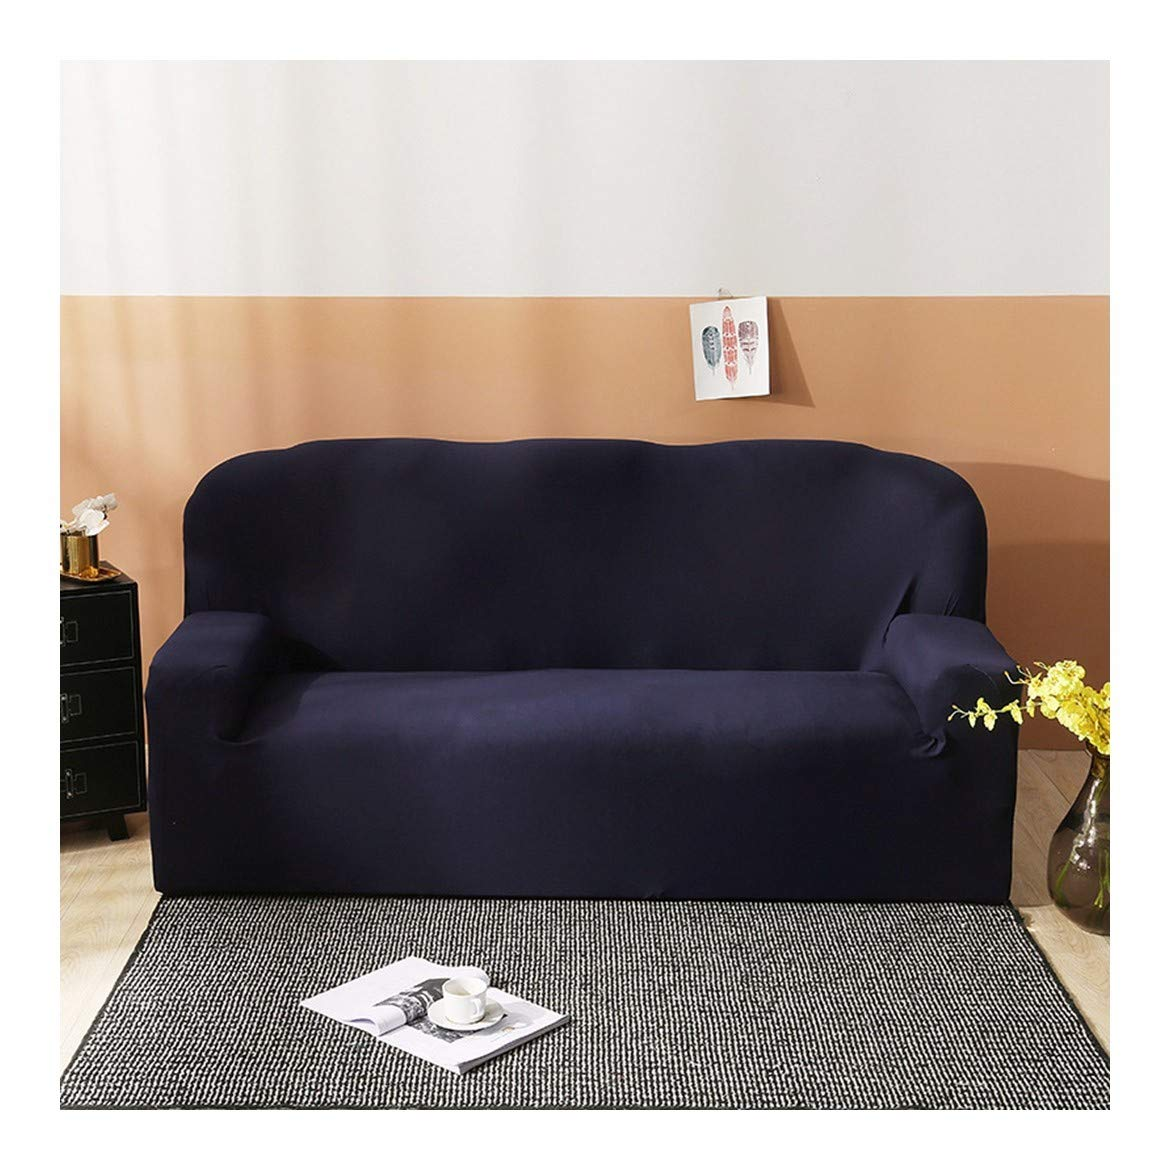 2seat VGUYFUYH Dark bluee Four Seasons Universal Sofa Cover Polyester Full Package Elasticity Home Universal Sofa Cover Simple Fashion One Piece Durable DustProof Pet Dog Predective Cover,2Seat